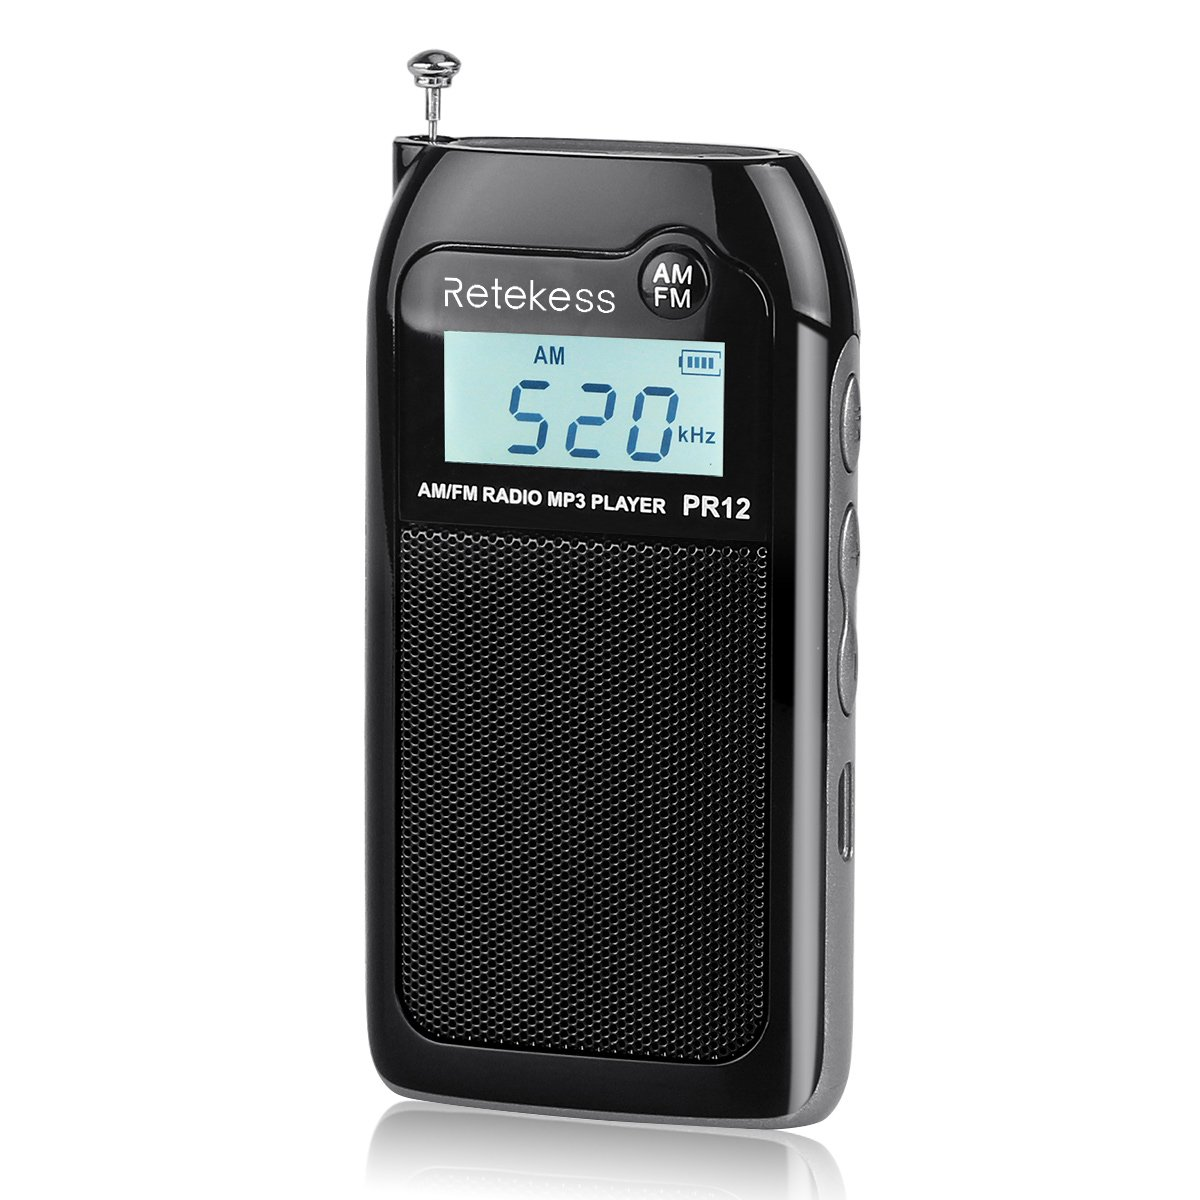 Retekess PR12 Portable AM FM Radio Mini Transistor DSP Digital MP3 Music Player Support TF Card with Rechargeable Battery for Walking Jogging Gym Camping(Black)